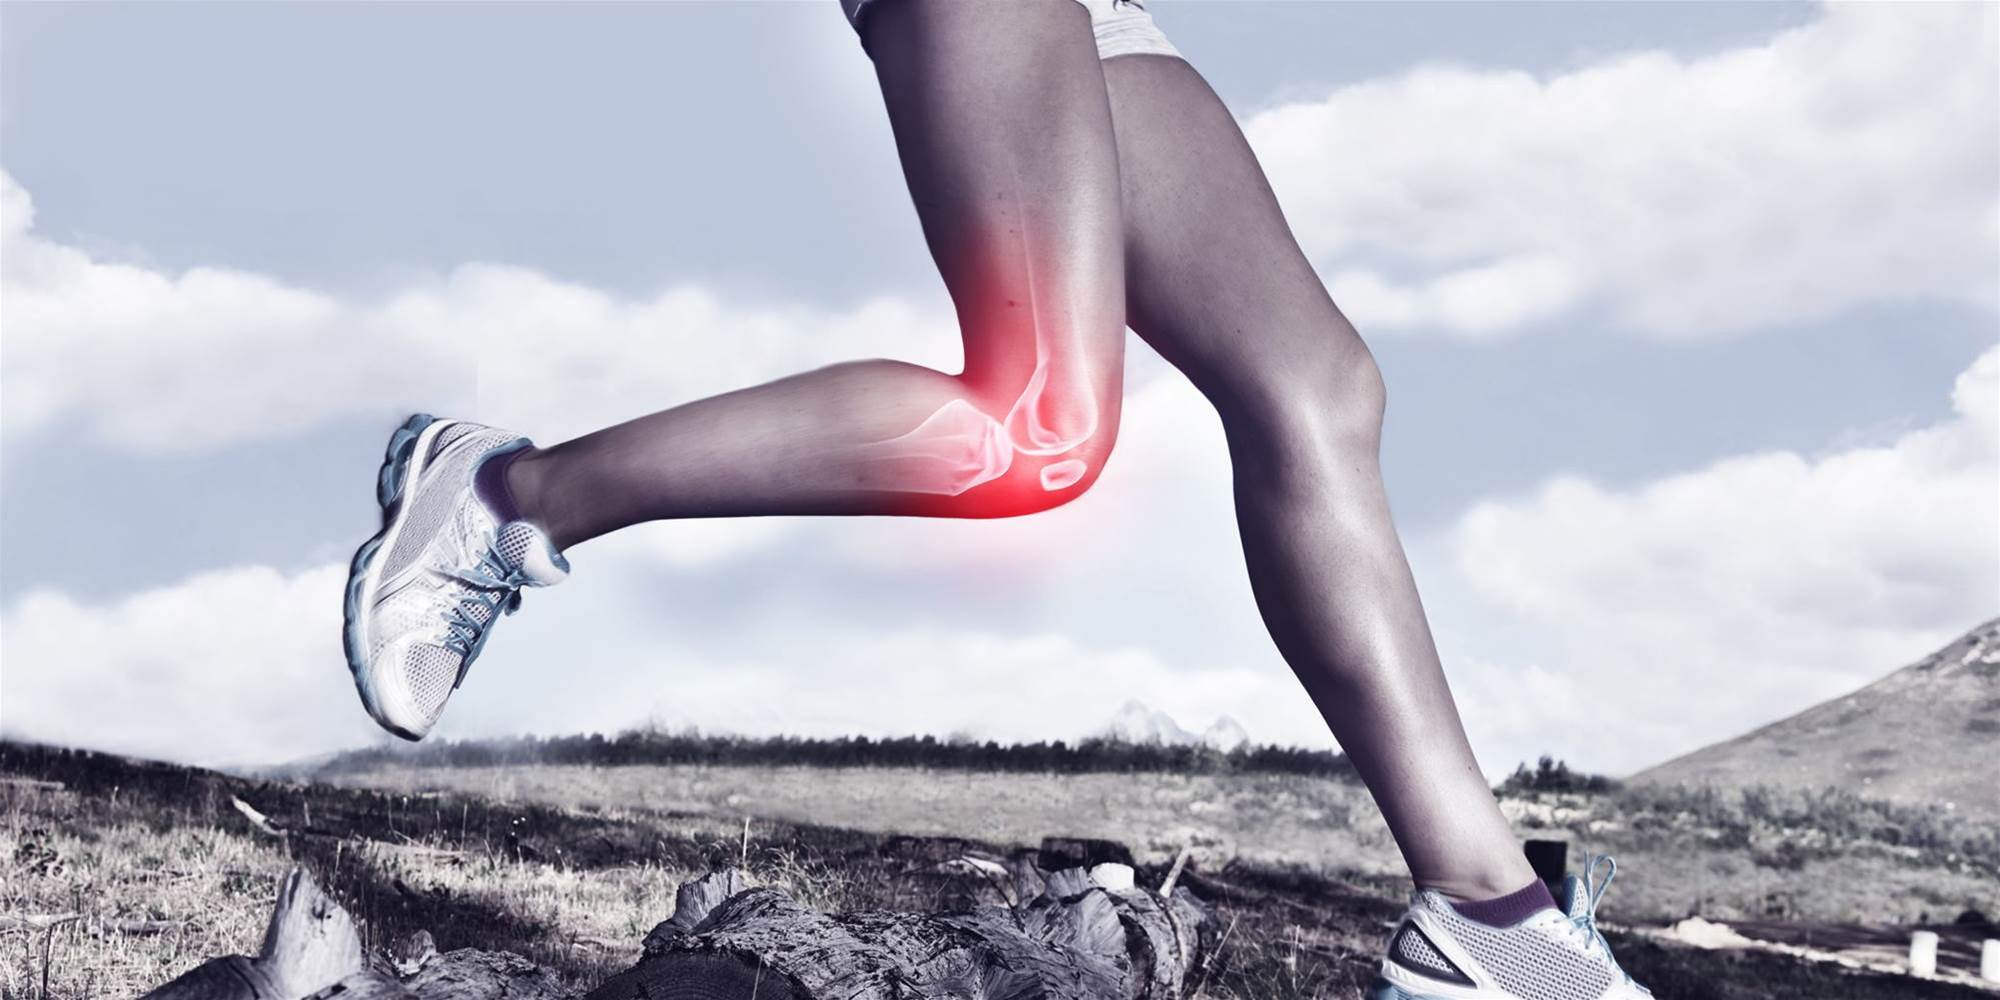 6 Knee Pain Causes That Have (Almost) Nothing to Do With Being Old